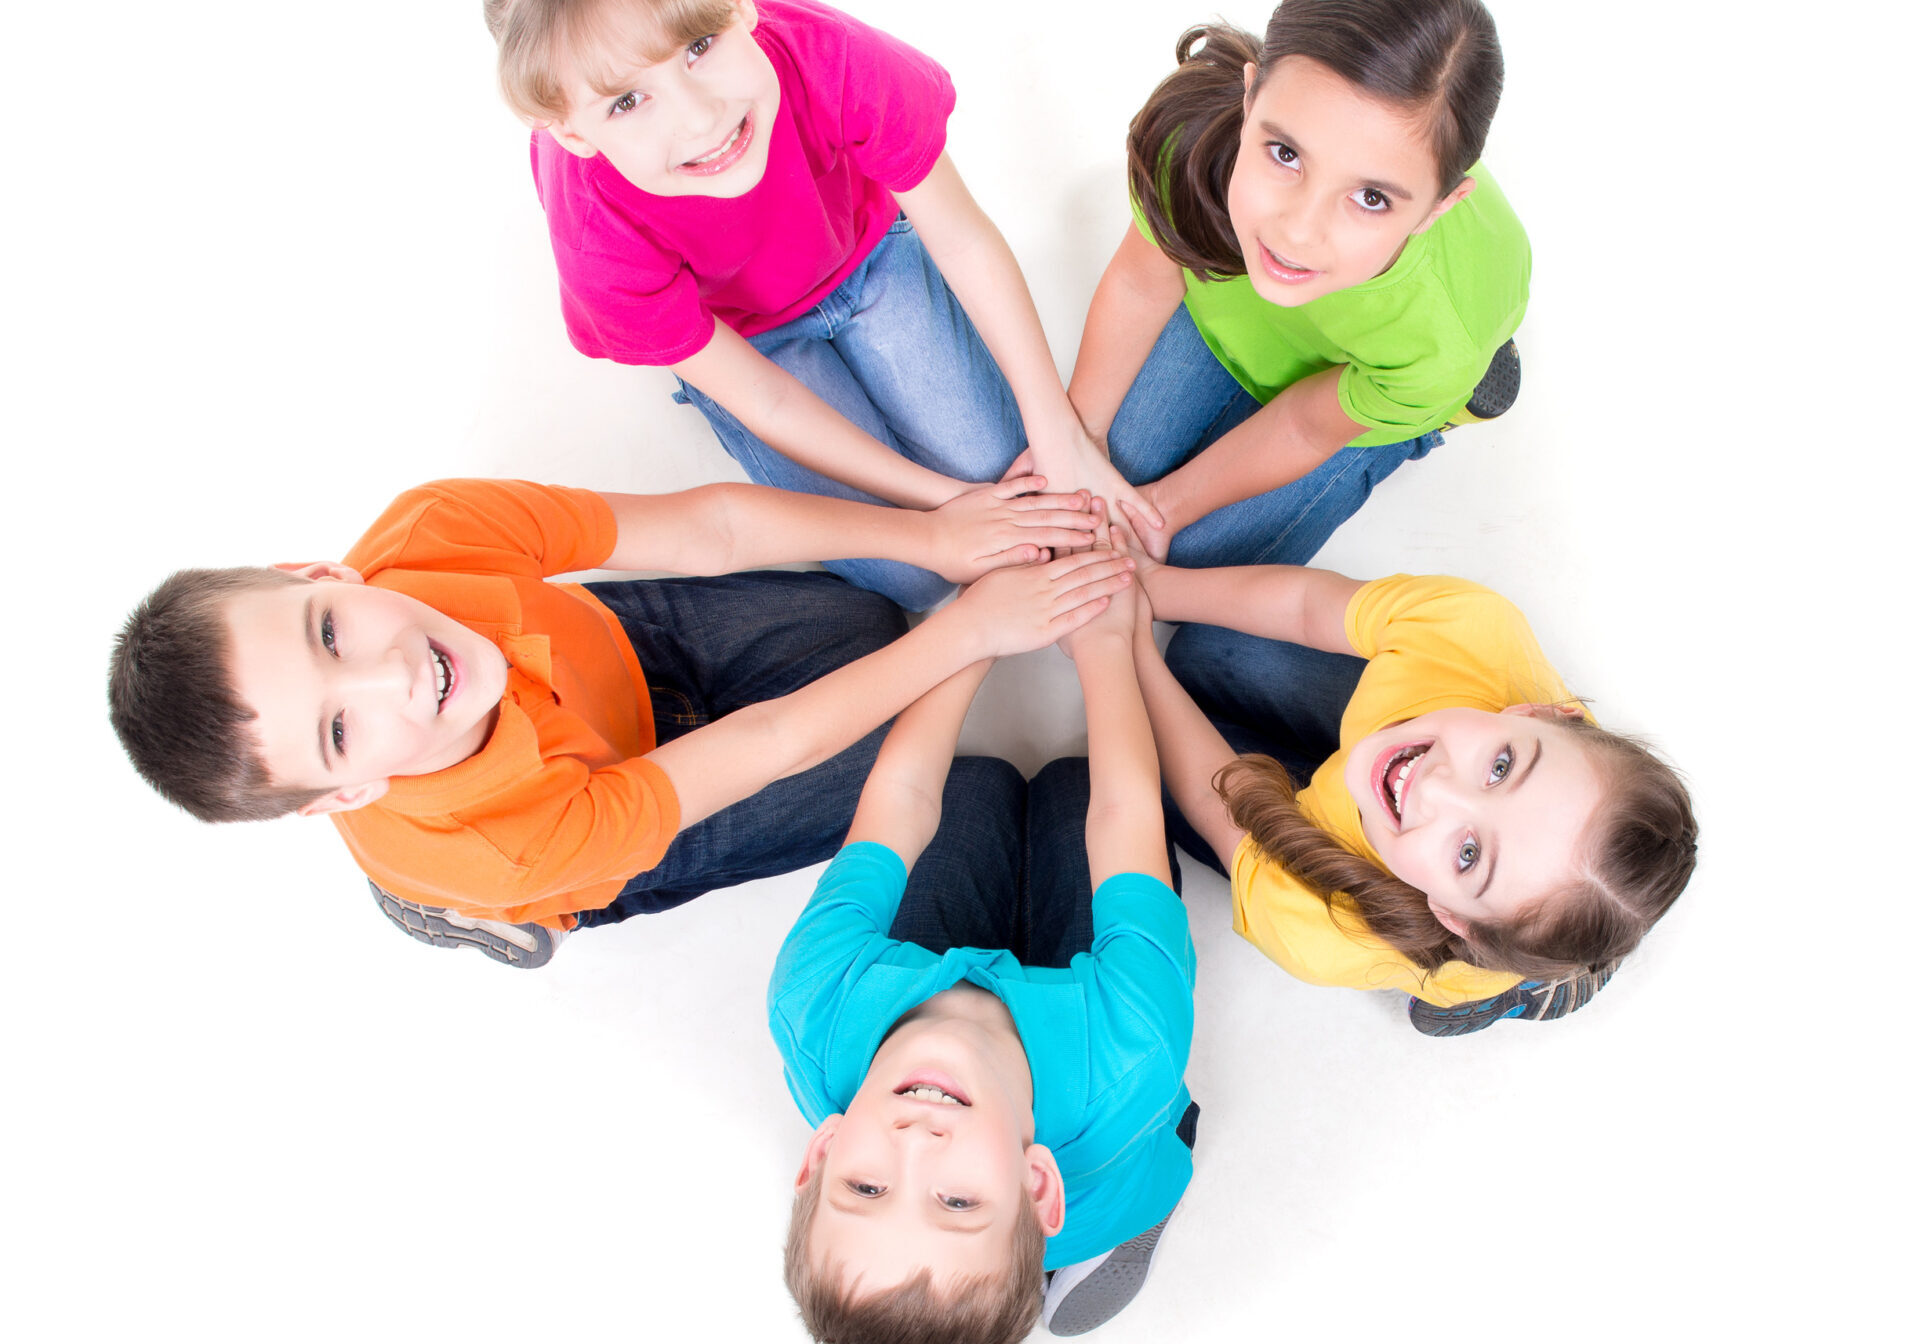 Group of happy children sitting on the floor in a circle holding hands and looking up - isolated on white.